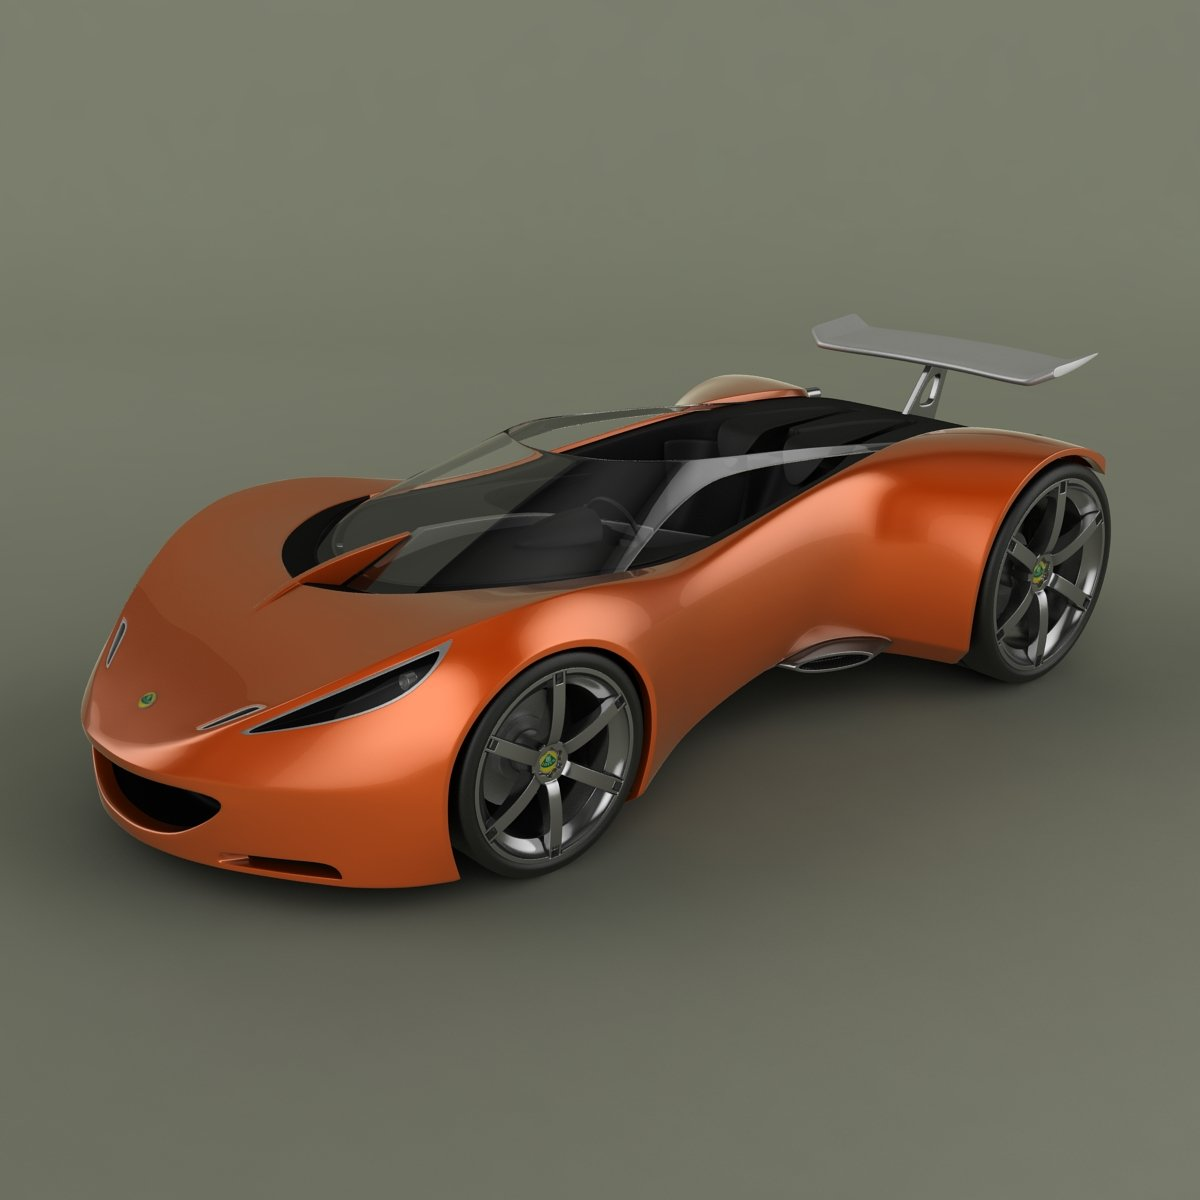 Lotus Hot Wheels Concept Downloadfree3d Com